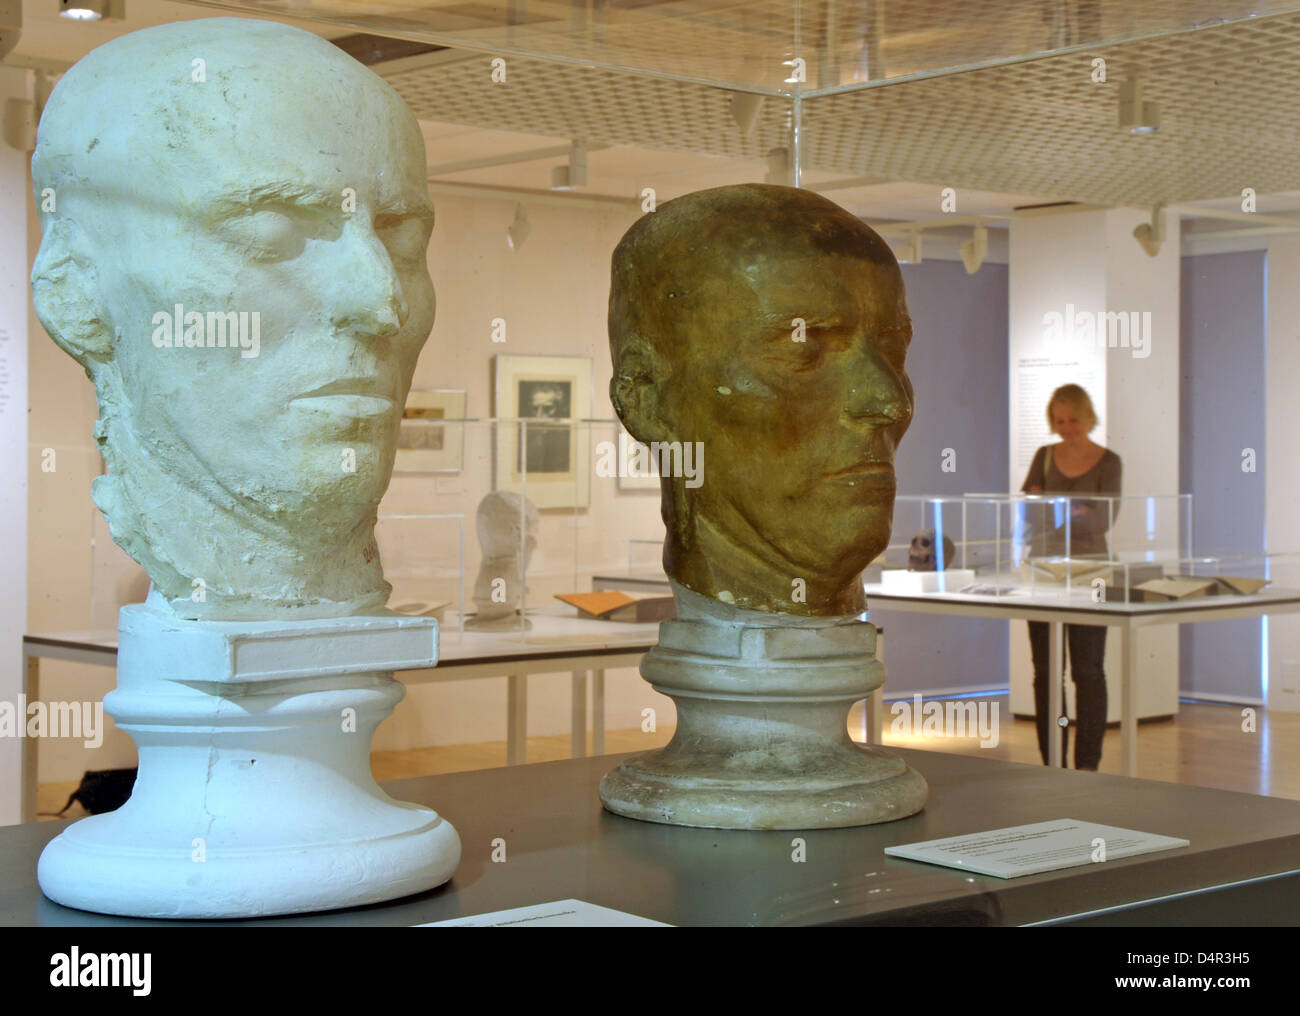 Two death masks of Schiller pictured at the exhibition ?Schillers skull - Physiognomy of an idea? in the Schillermuseum - Stock Image